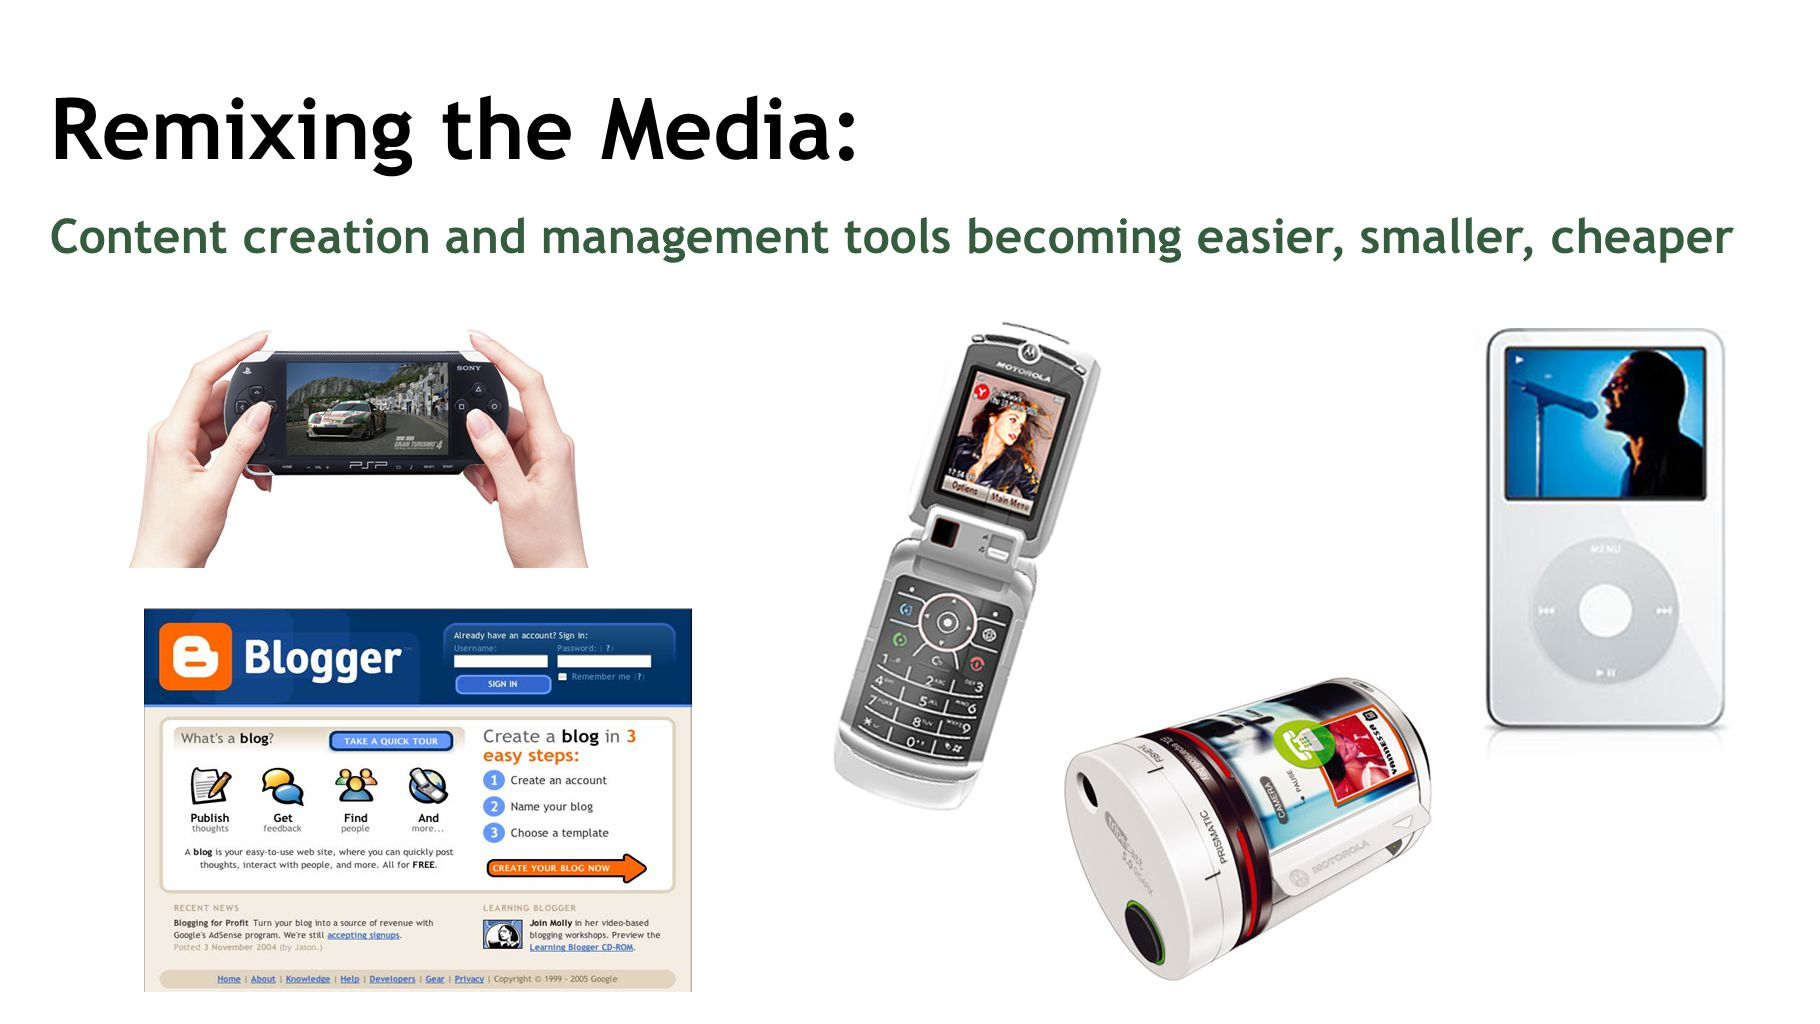 Remixing the Media: Content creation and management tools becoming easier, smaller, cheaper